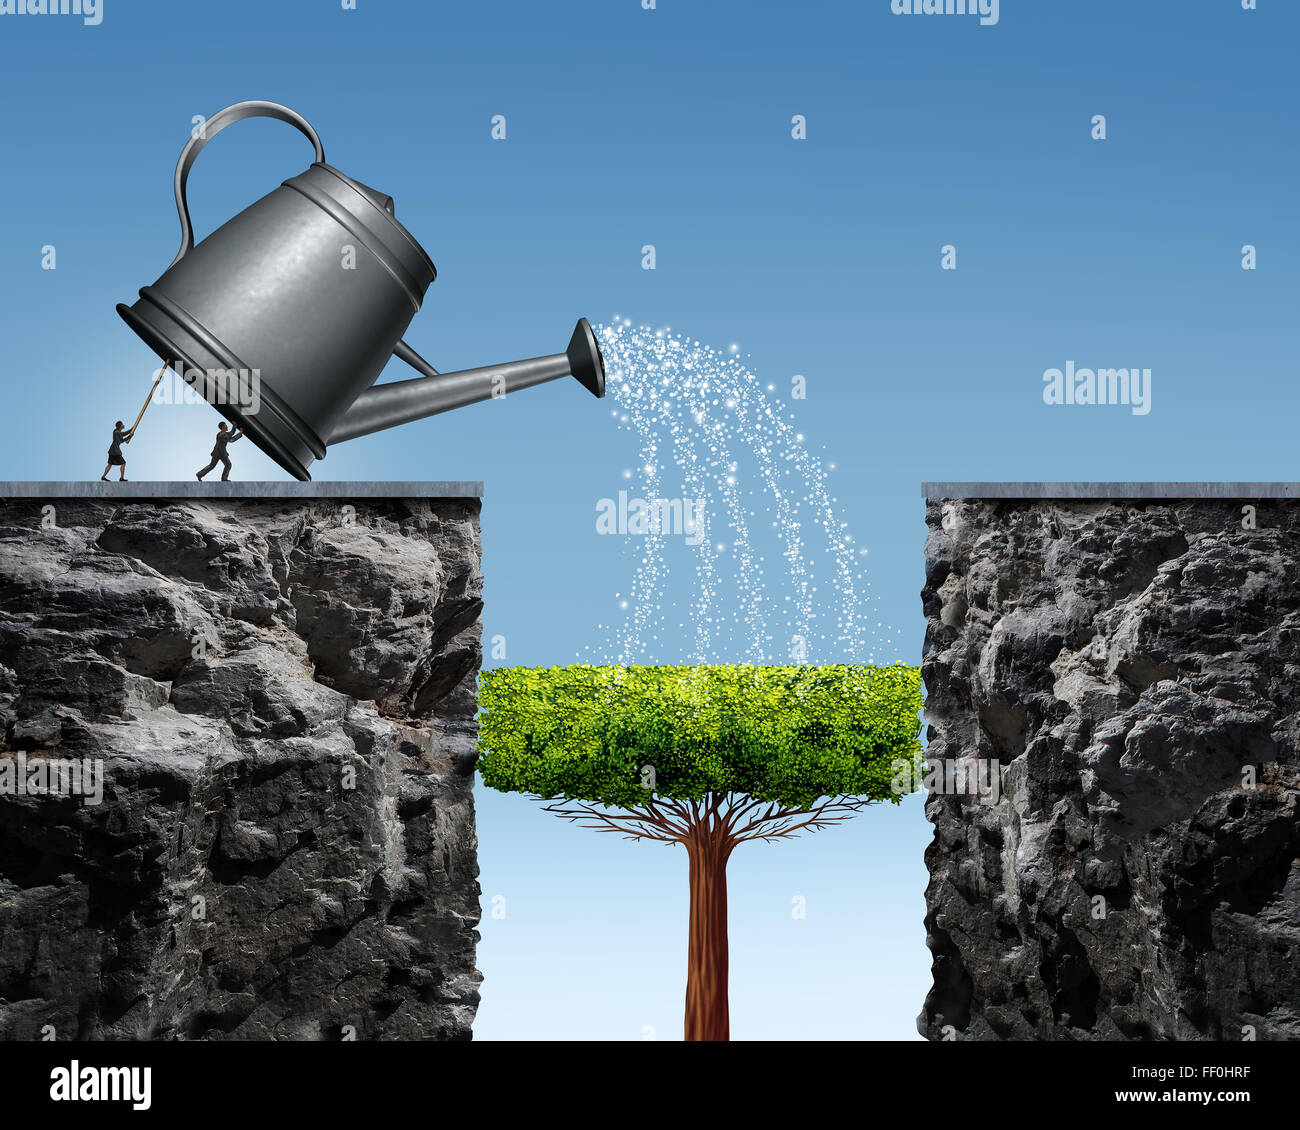 Planning for future success business concept with a businessman and businesswoman lifting a watering can to help - Stock Image